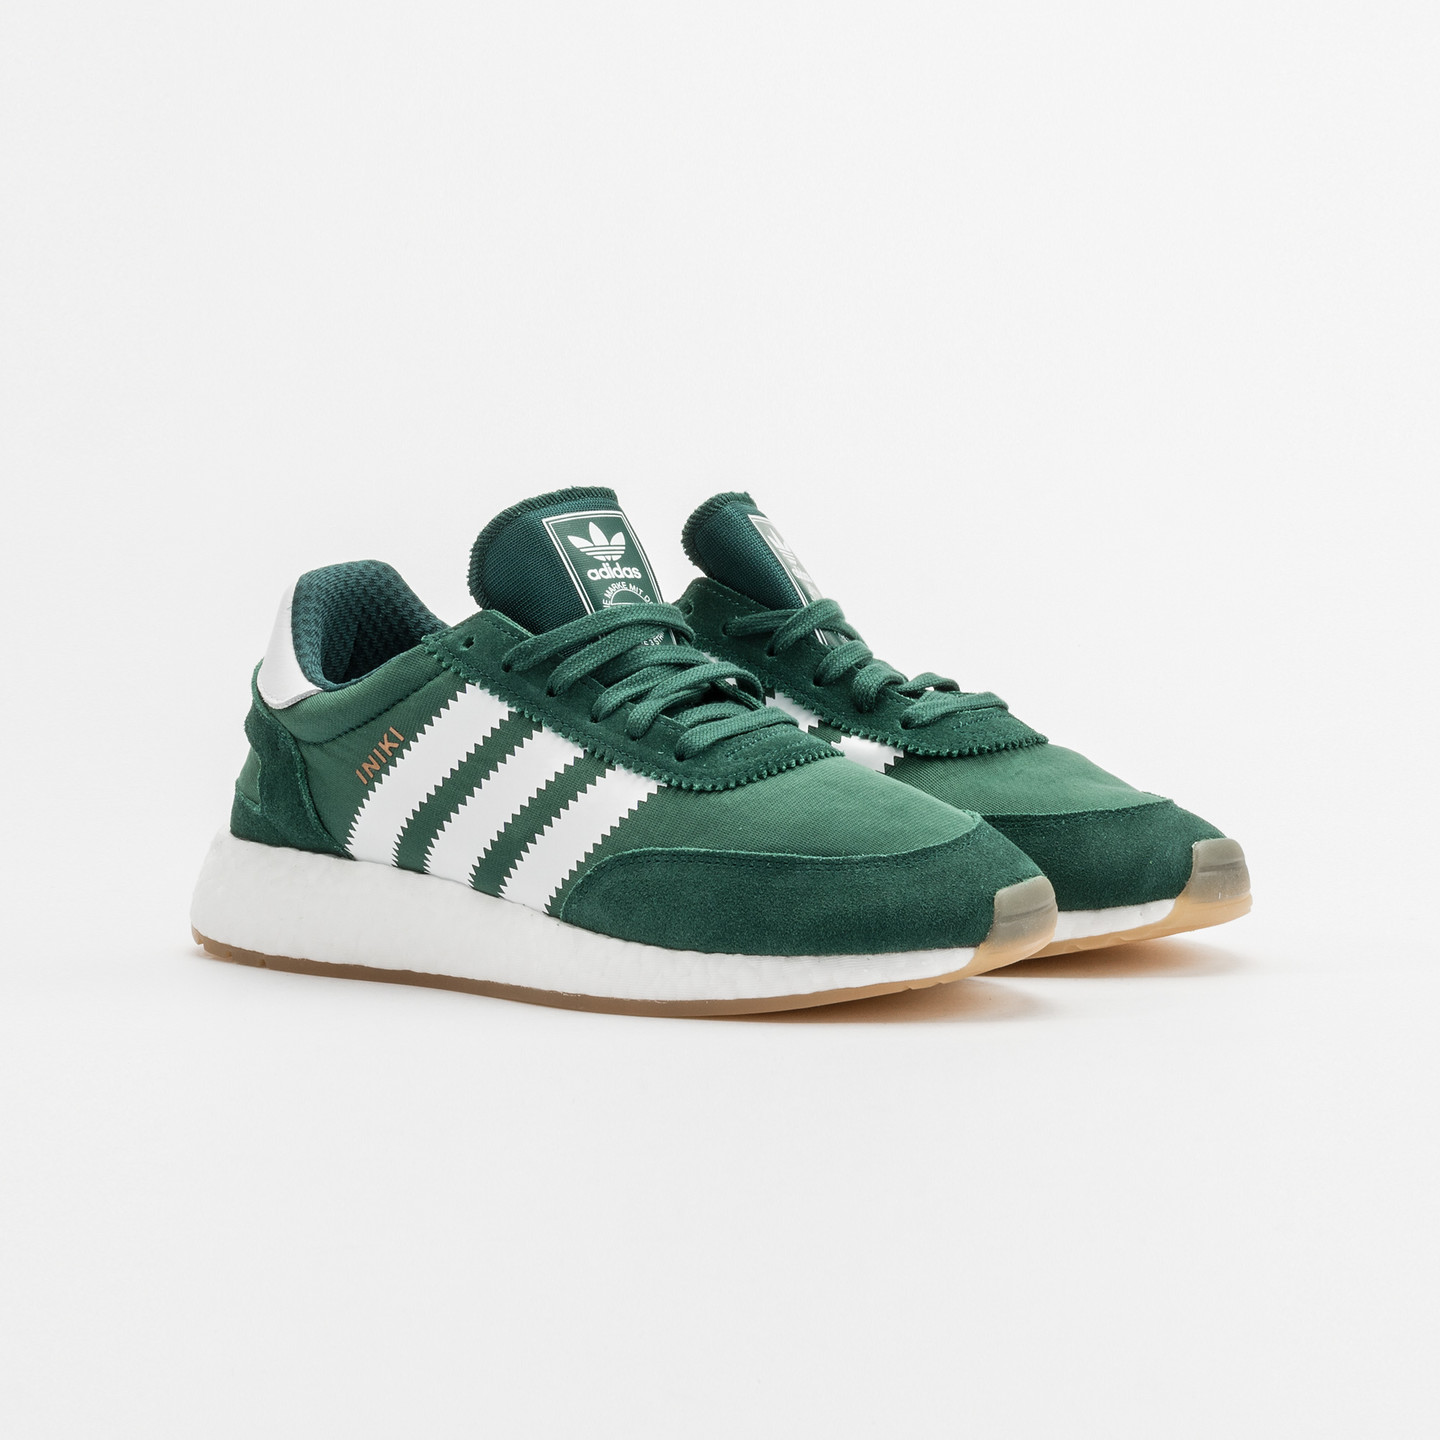 adidas iniki runner collegiate green white by9726. Black Bedroom Furniture Sets. Home Design Ideas